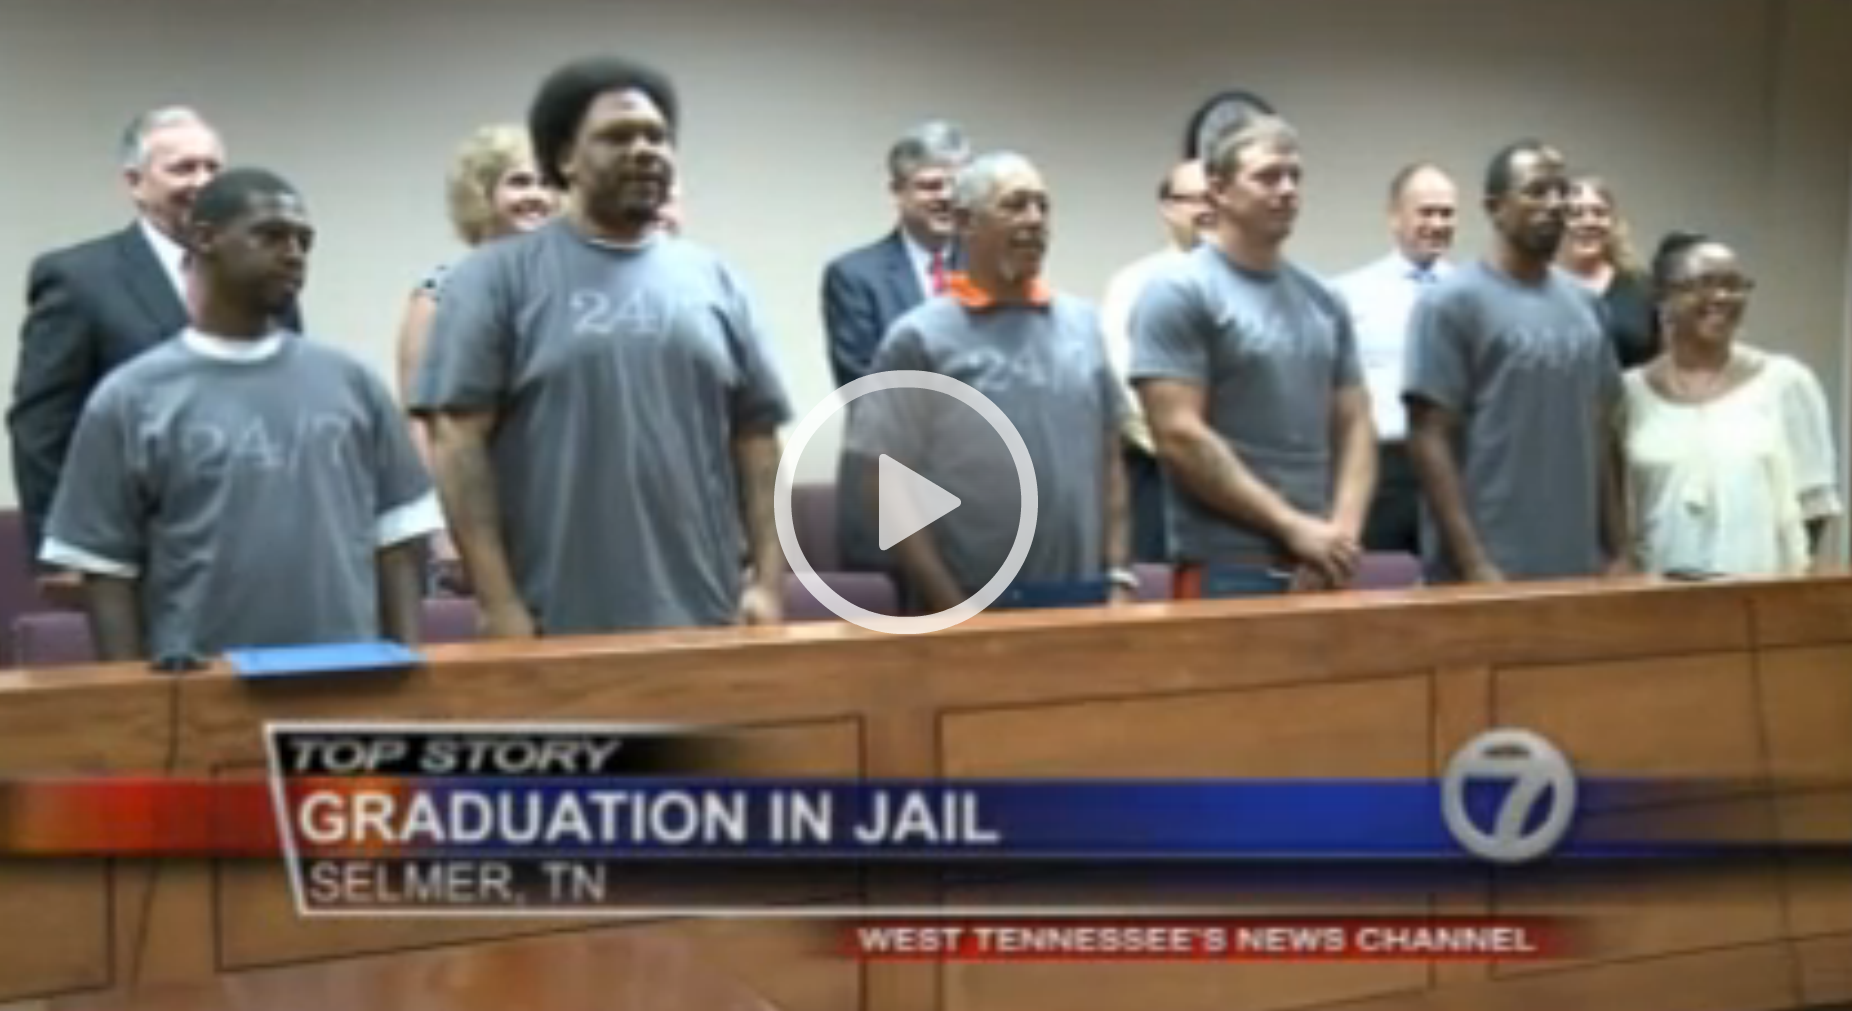 Dads Graduate Fatherhood Pilot Program in McNairy Co Jail, Selmer, Tenn [Video]